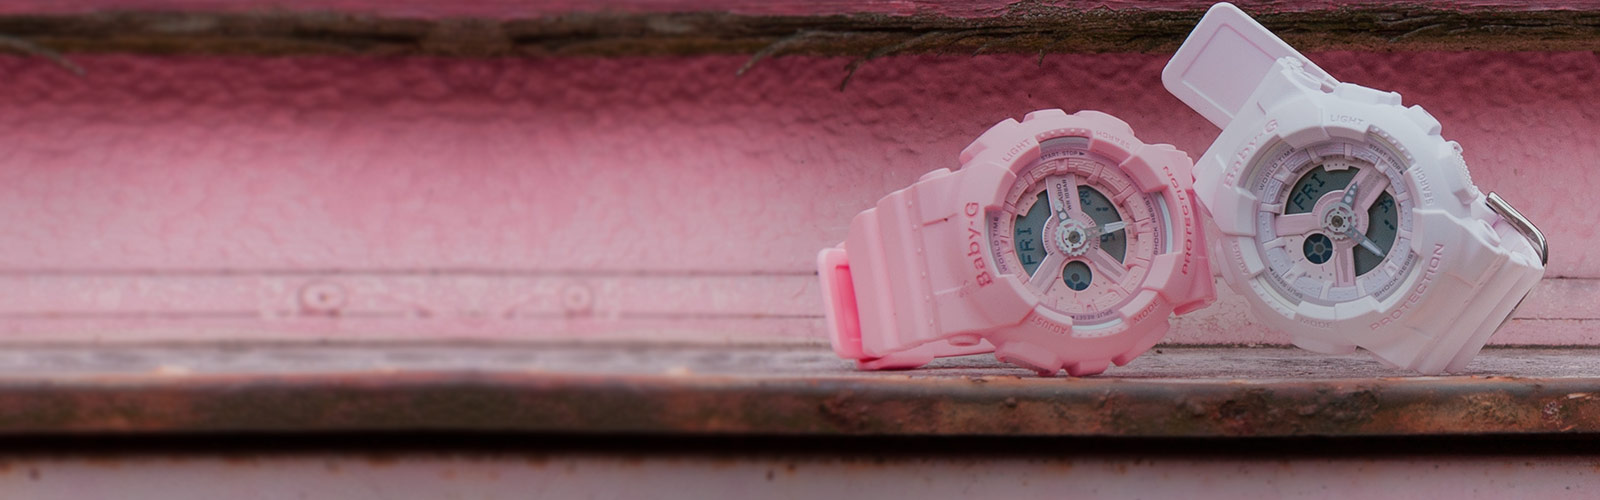 The new watches from BABY-G